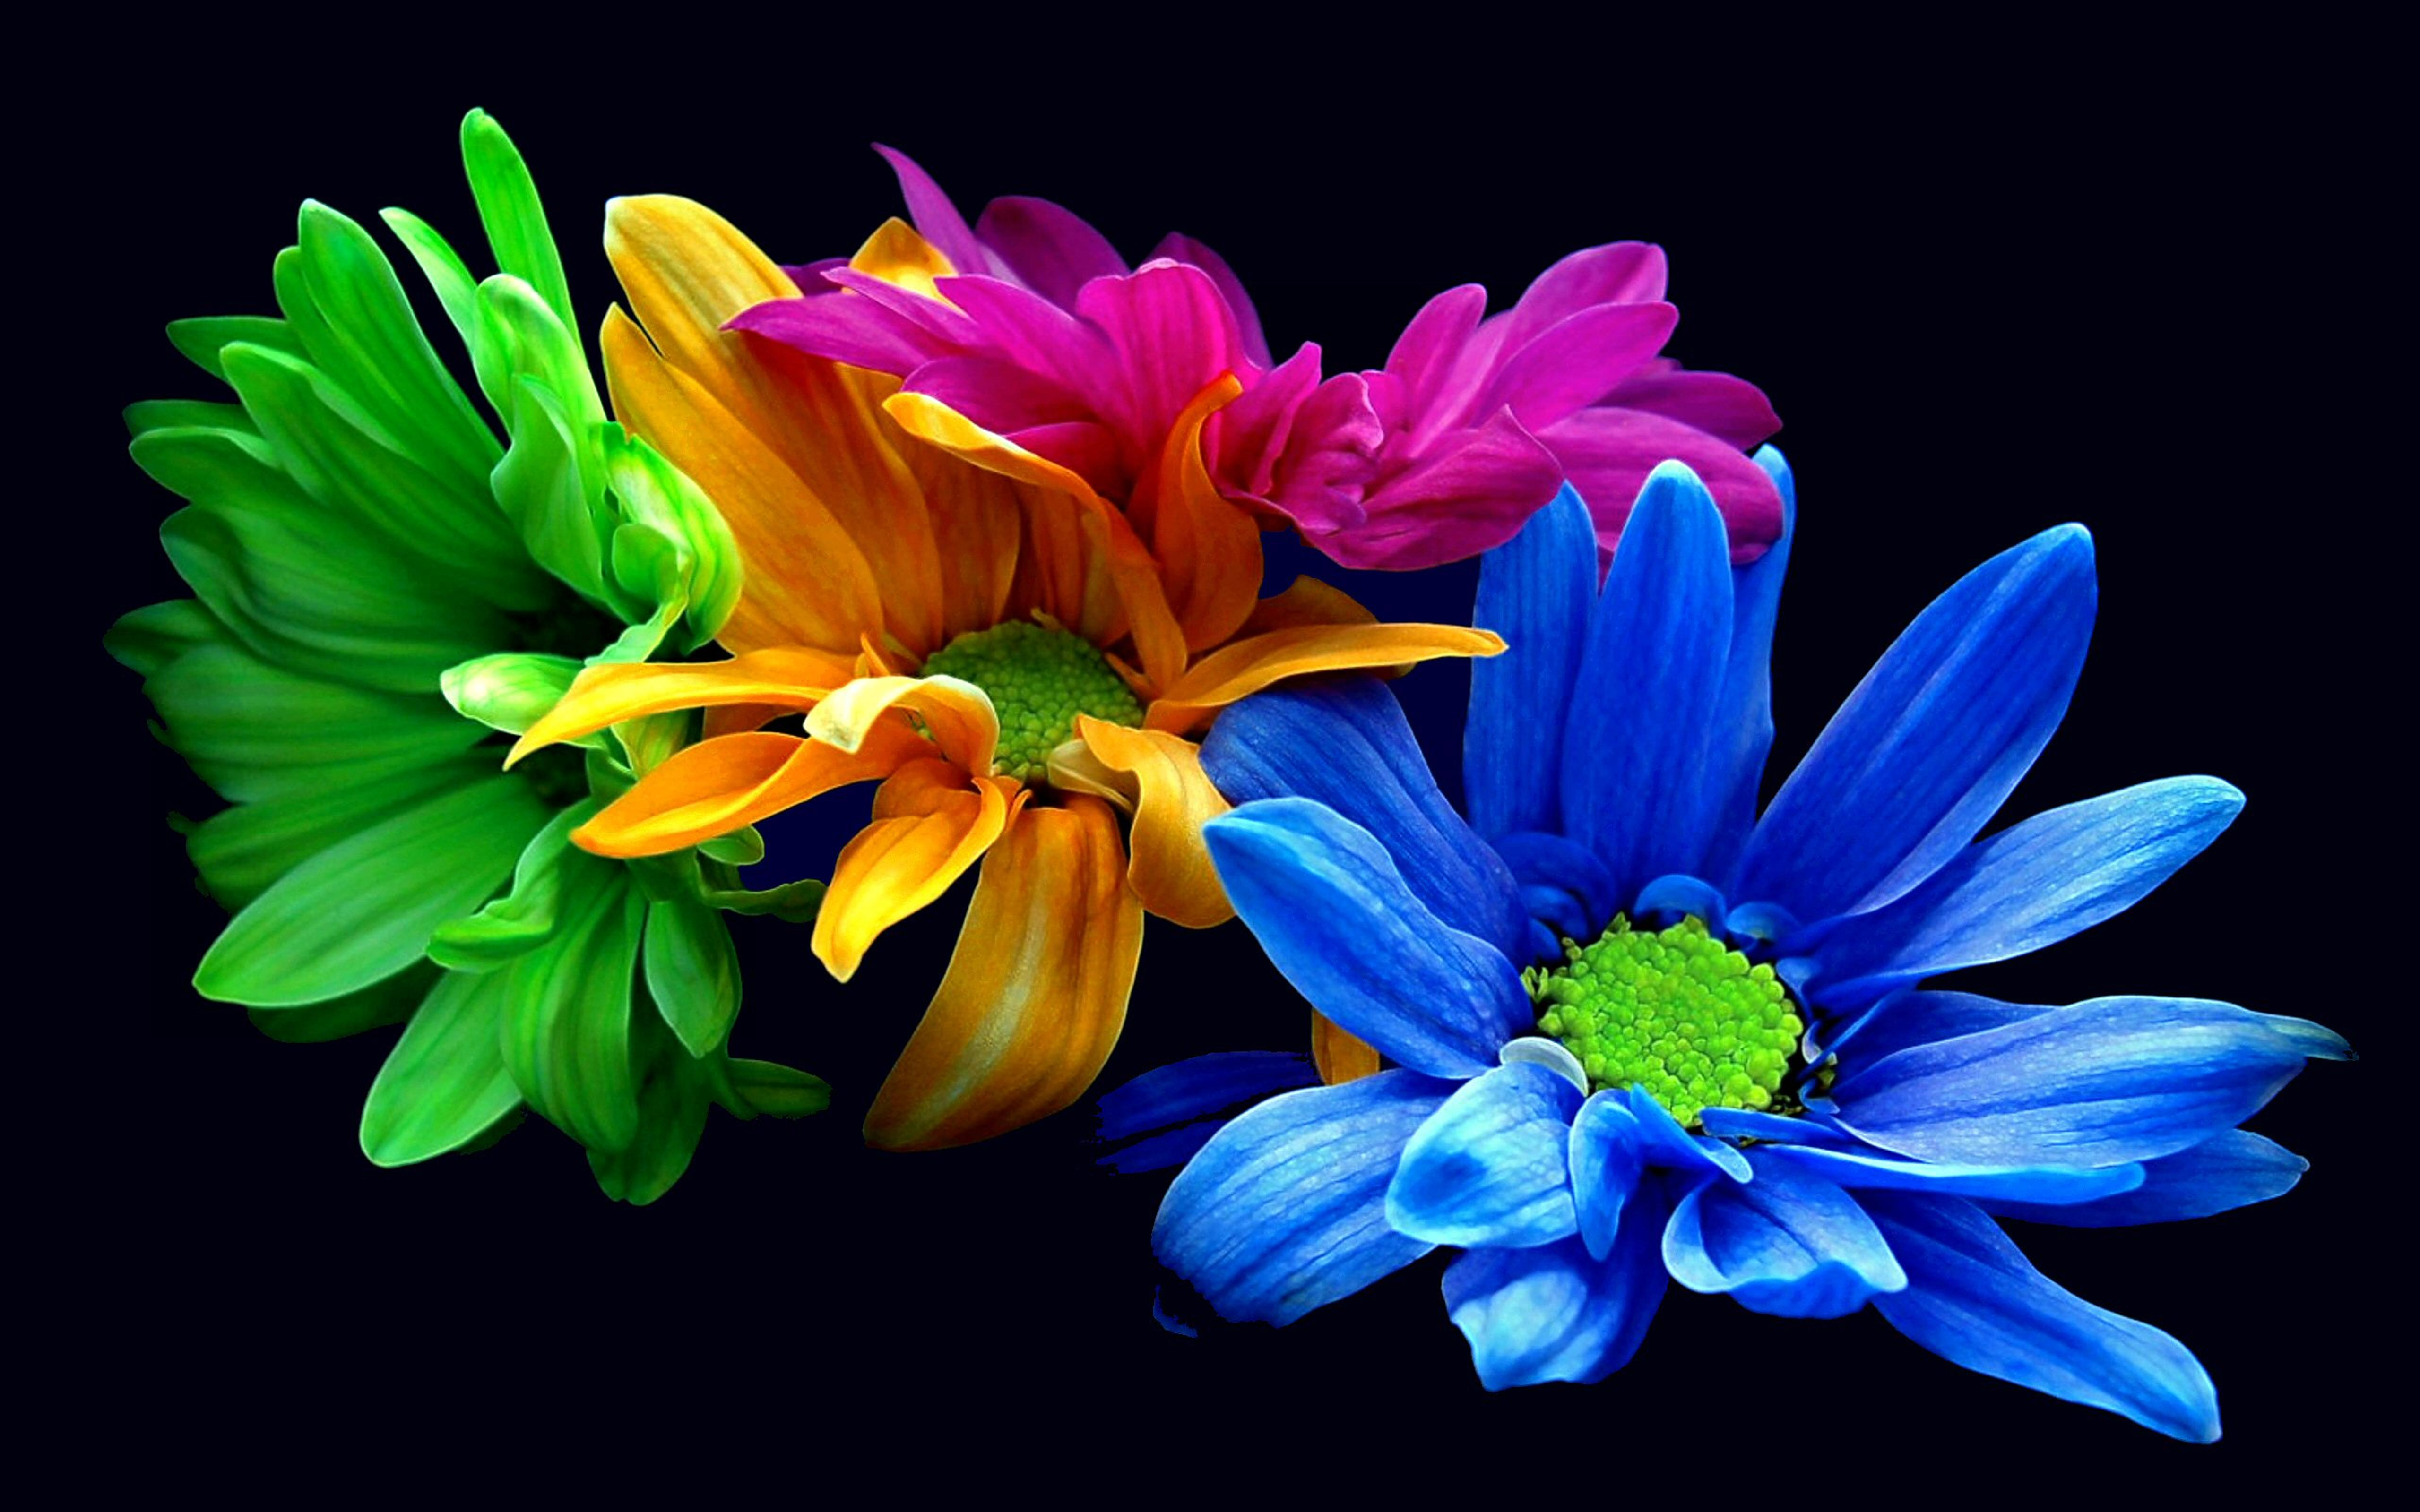 Colored Daisies On The Black Background Wallpaper Download